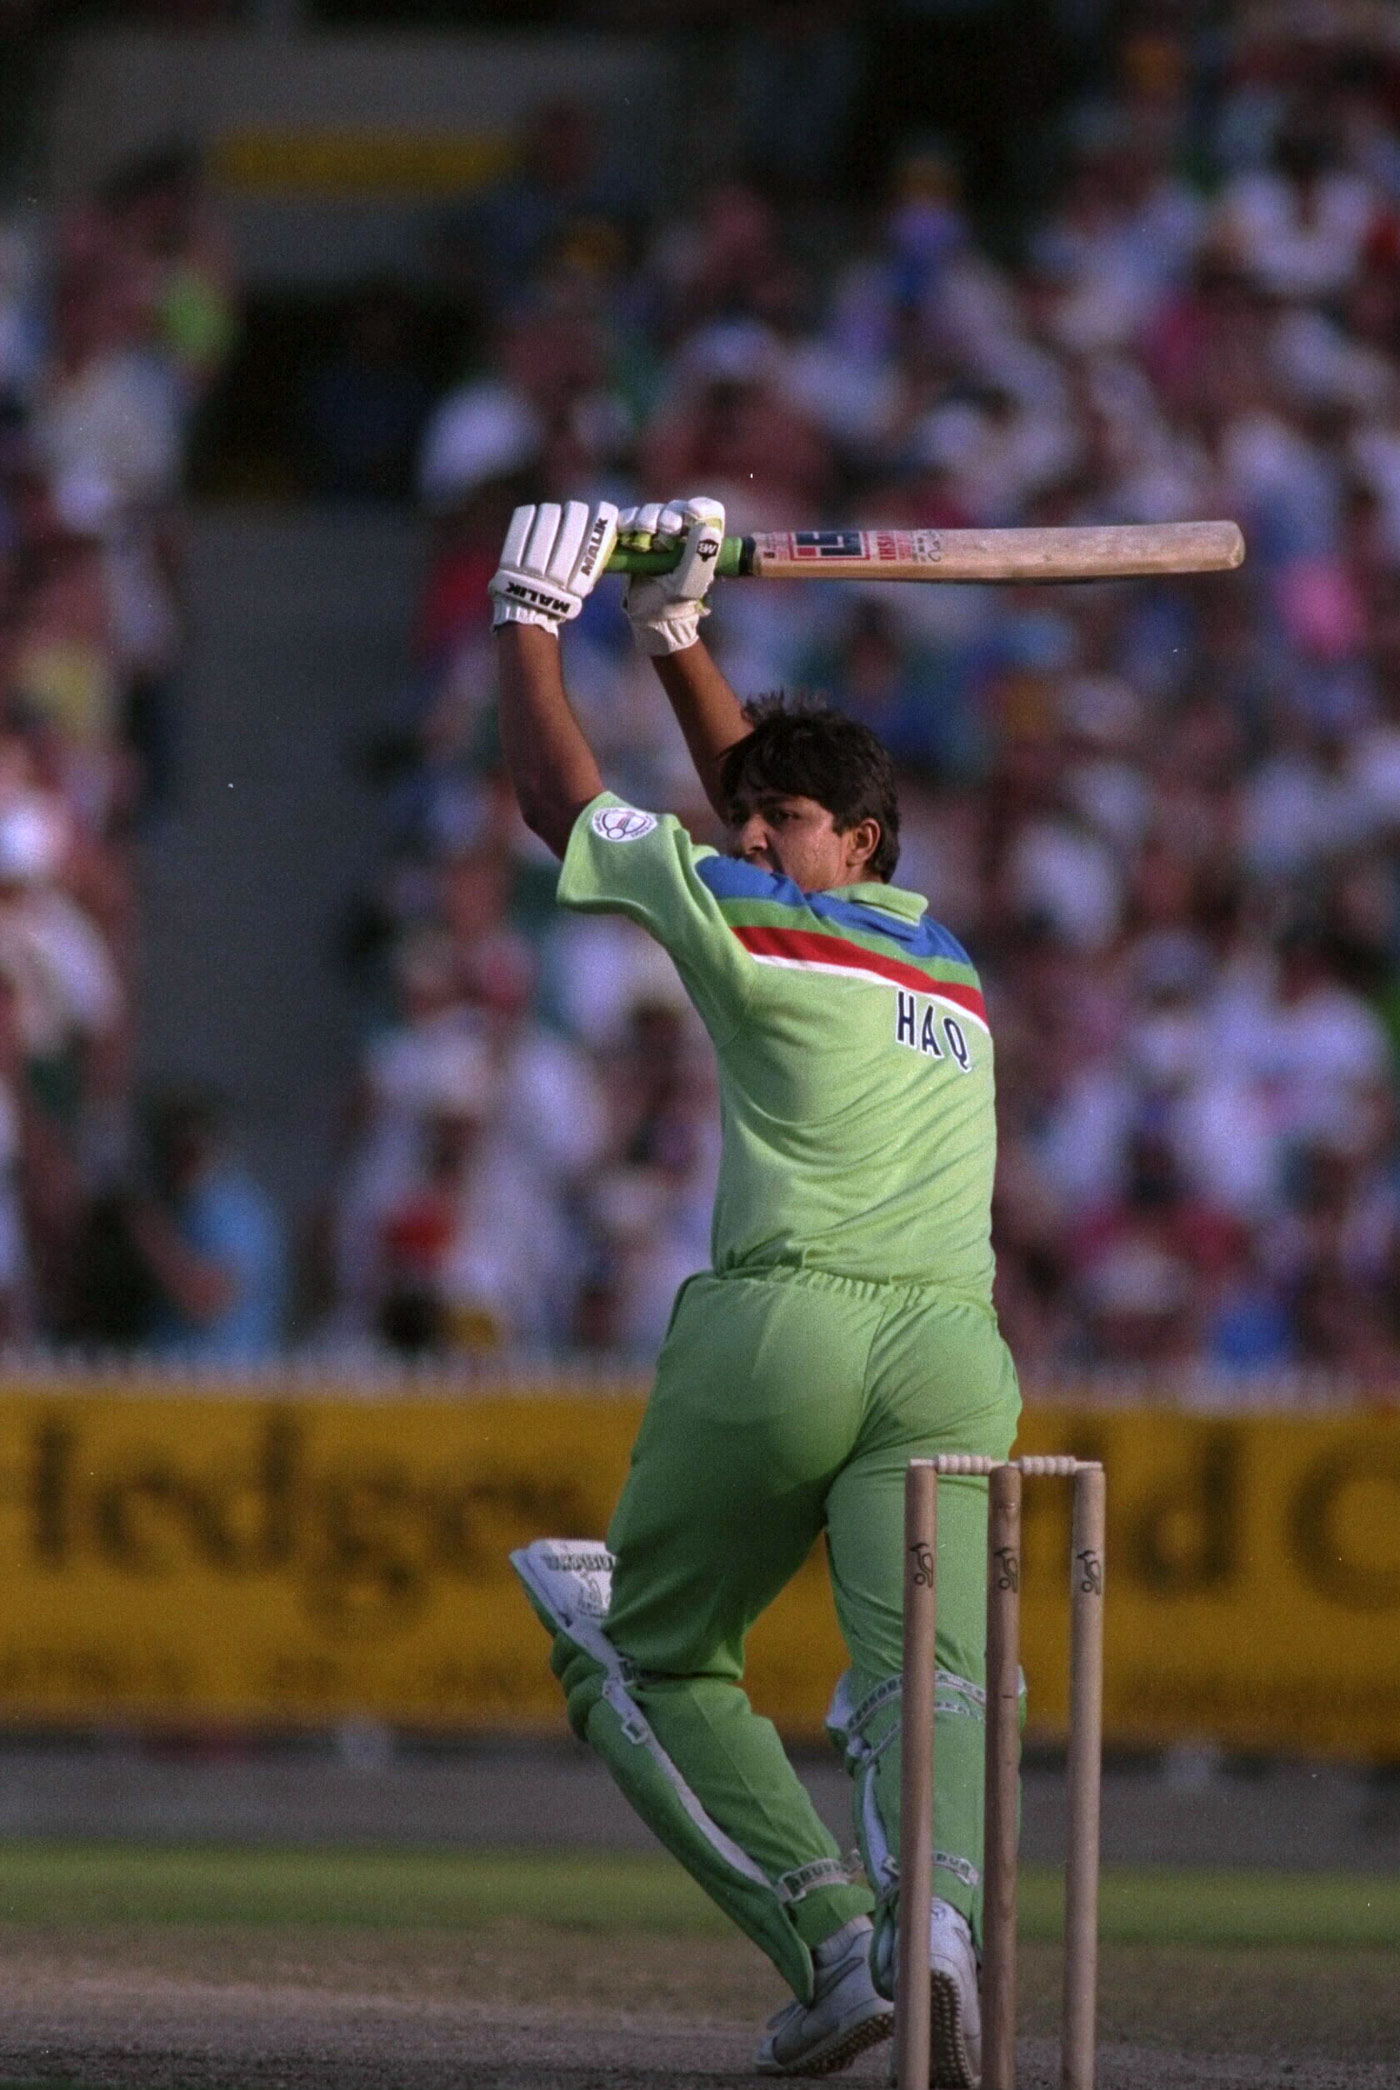 Inzamam-ul-Haq's 35-ball 42 helped Pakistan gain a crucial 153 runs off the last 20 overs in the 1992 World Cup final